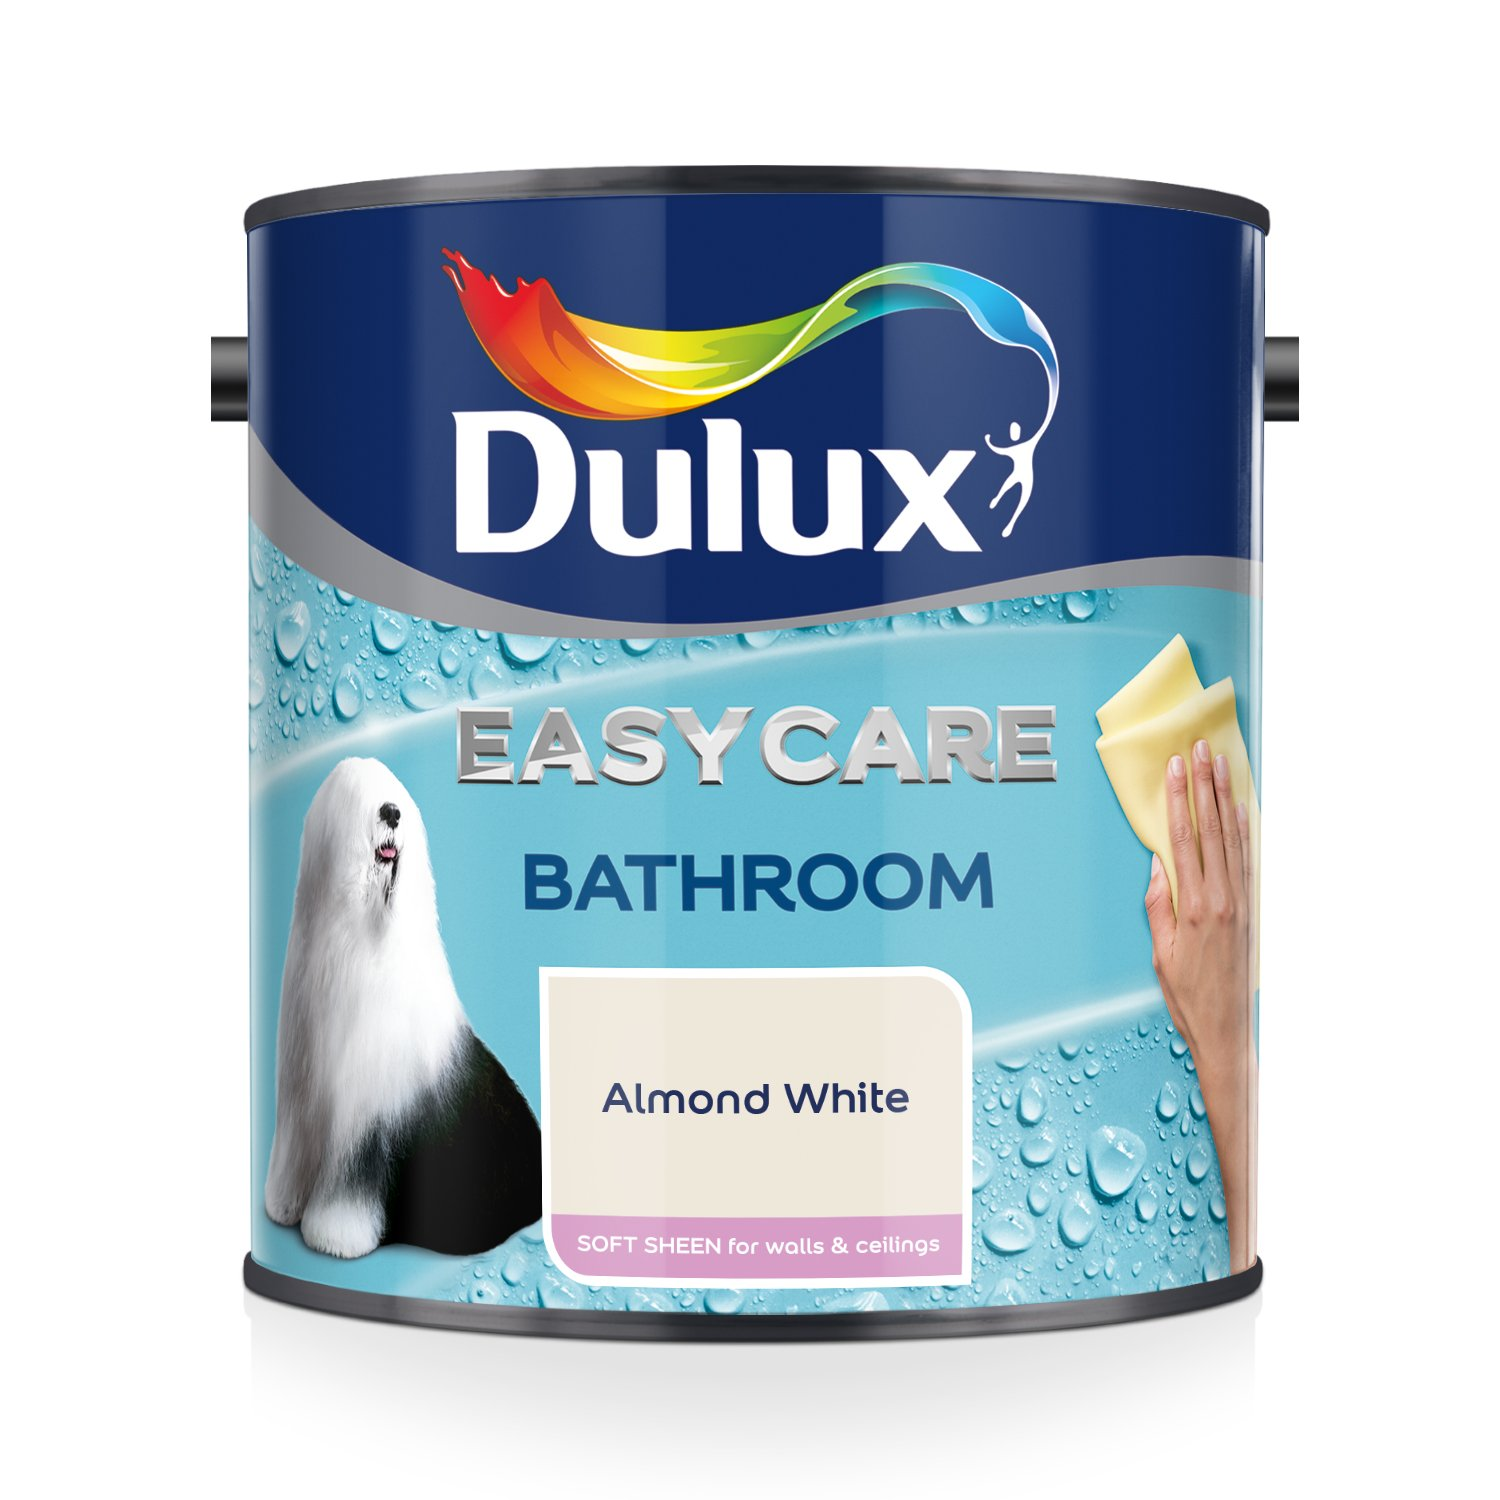 Dulux 2, 5  l 5092175  bañ o Plus Soft Sheen Pintura  –   Pure Color Blanco Brillante 5 l 5092175 baño Plus Soft Sheen Pintura - Pure Color Blanco Brillante Imperial Chemical Industries Ltd 500001